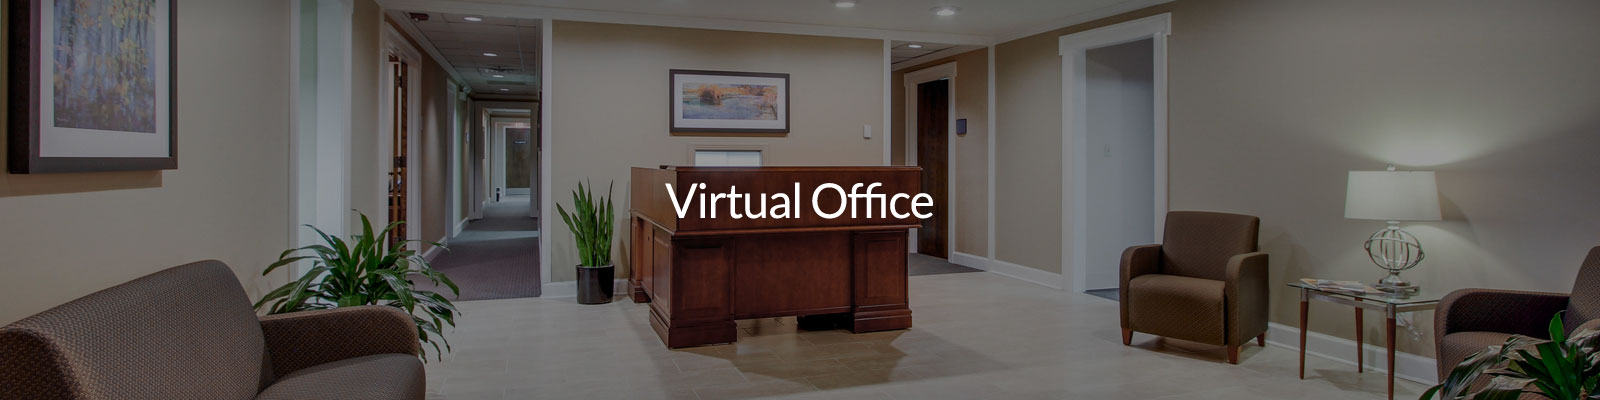 training creating working virtual staff using office and a tech it donut flexible voip